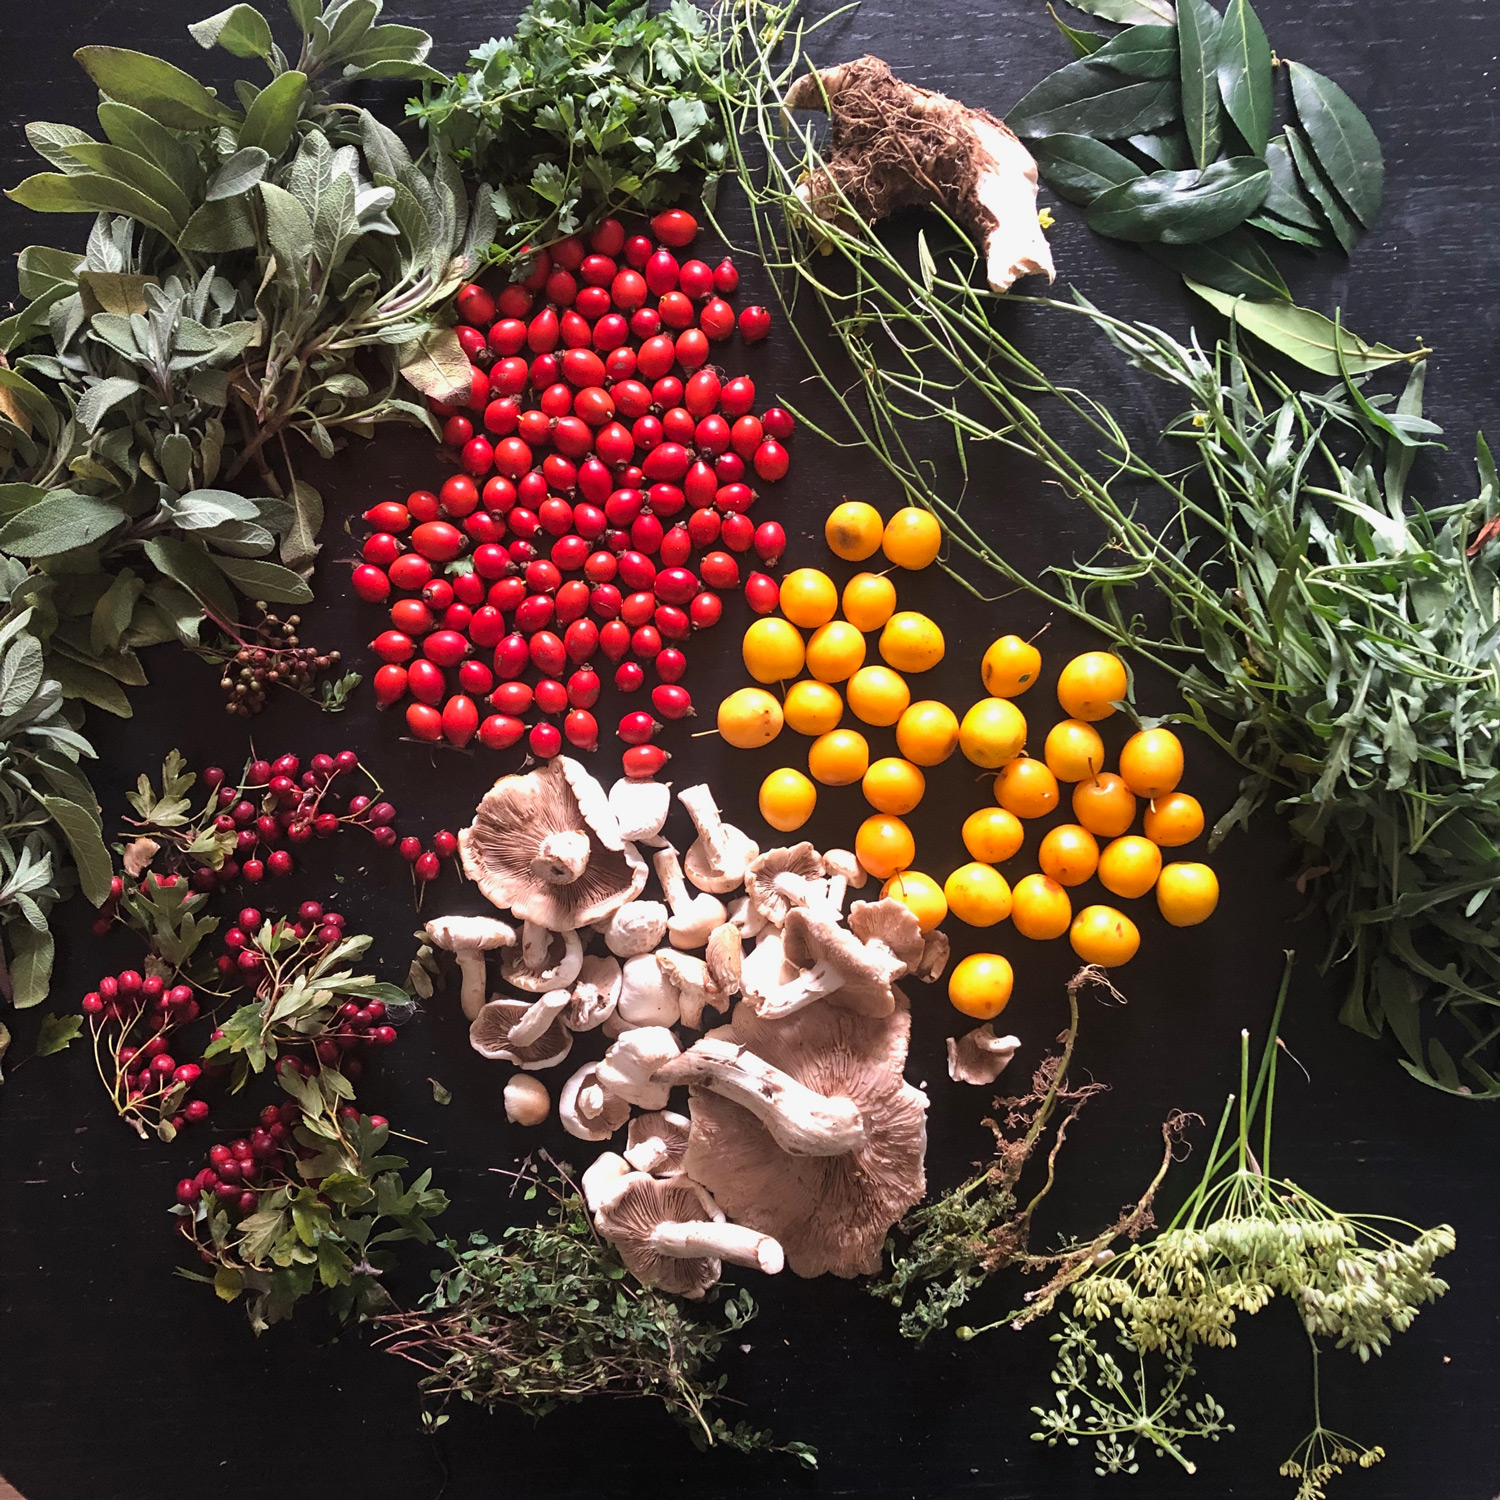 Results of foraging in east London on 31 August including: sage, salad burdock, horseradish, sweet basil, rocket, fennel, pineapple weed, Mirabelle plums, rosehips, Poplar mushrooms, thyme, and Hawthorne berries